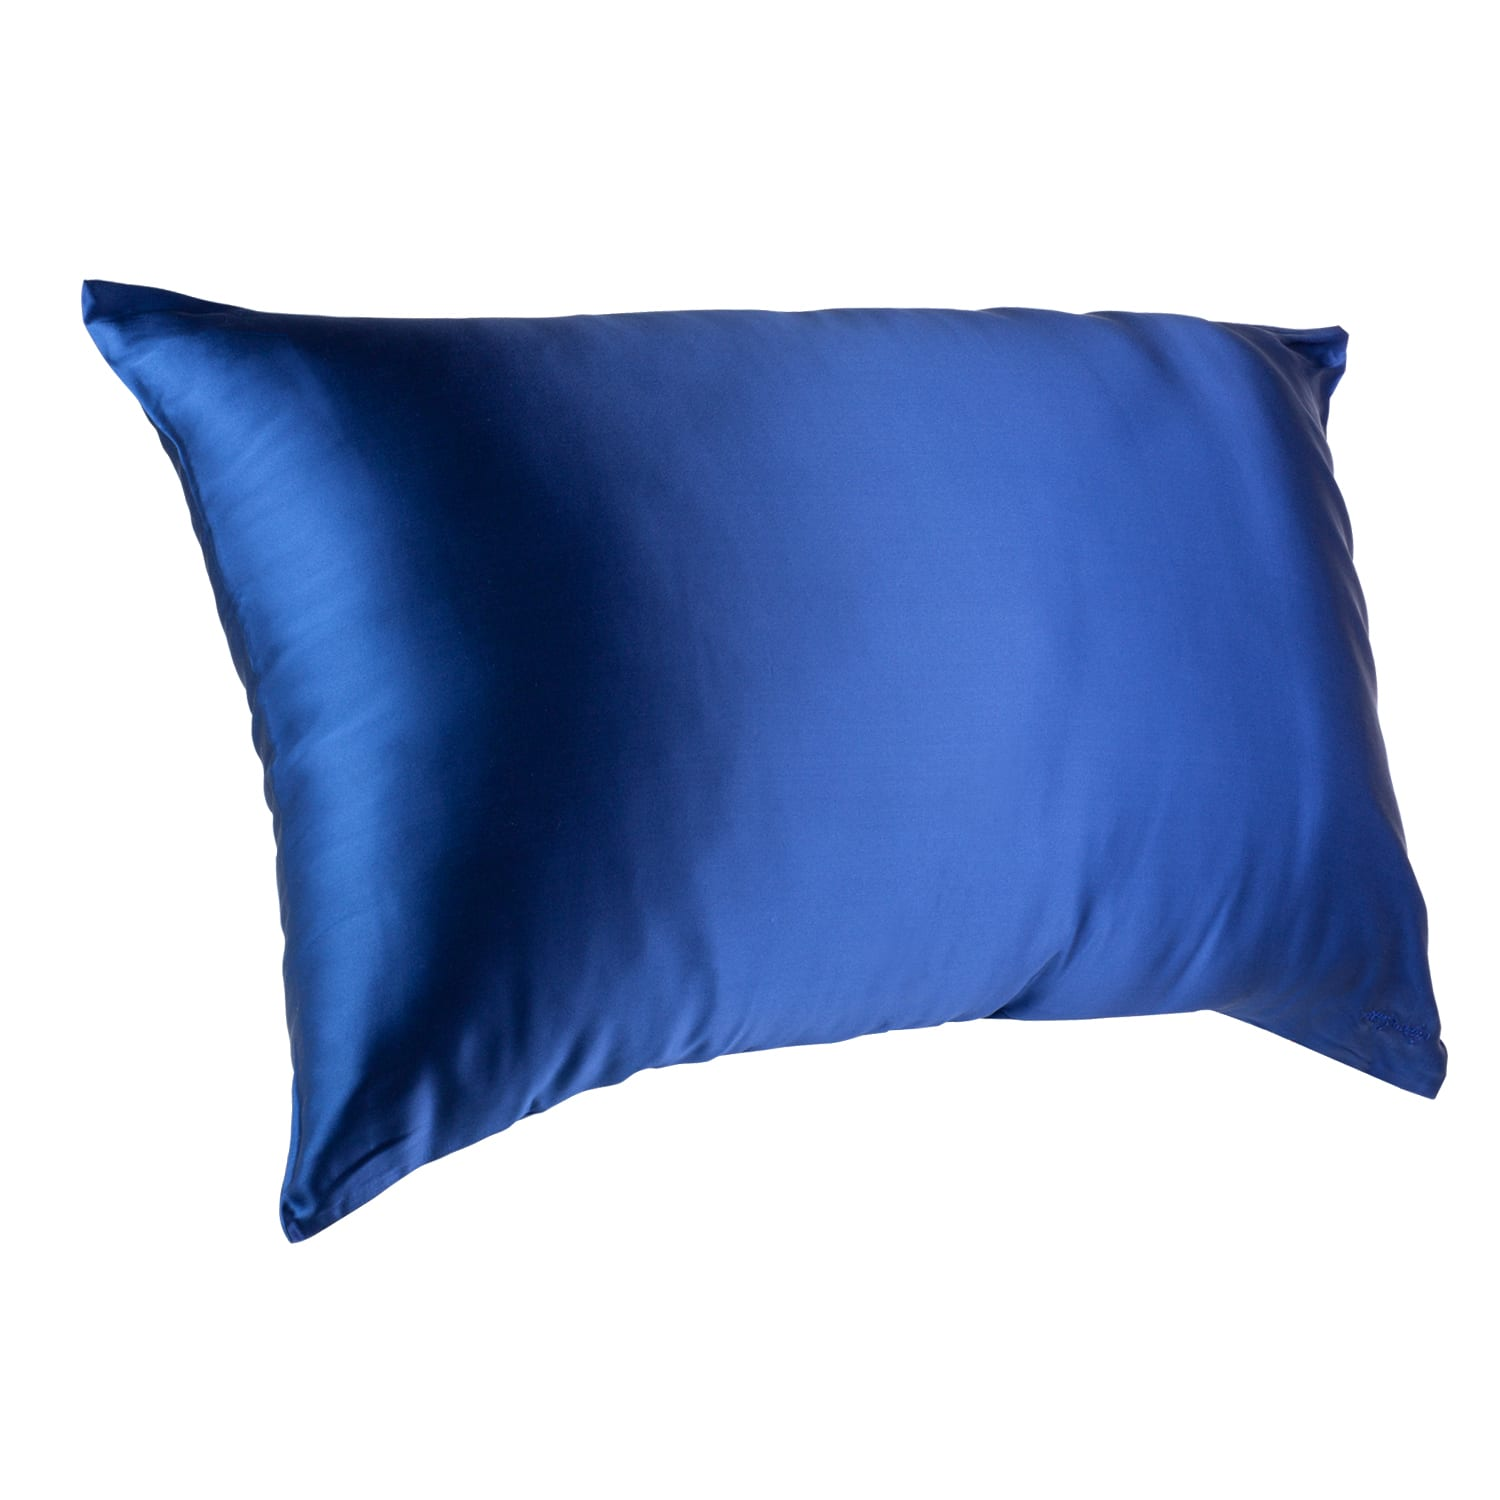 Midnight Blue Youth Silk Pillow Case on a pillow